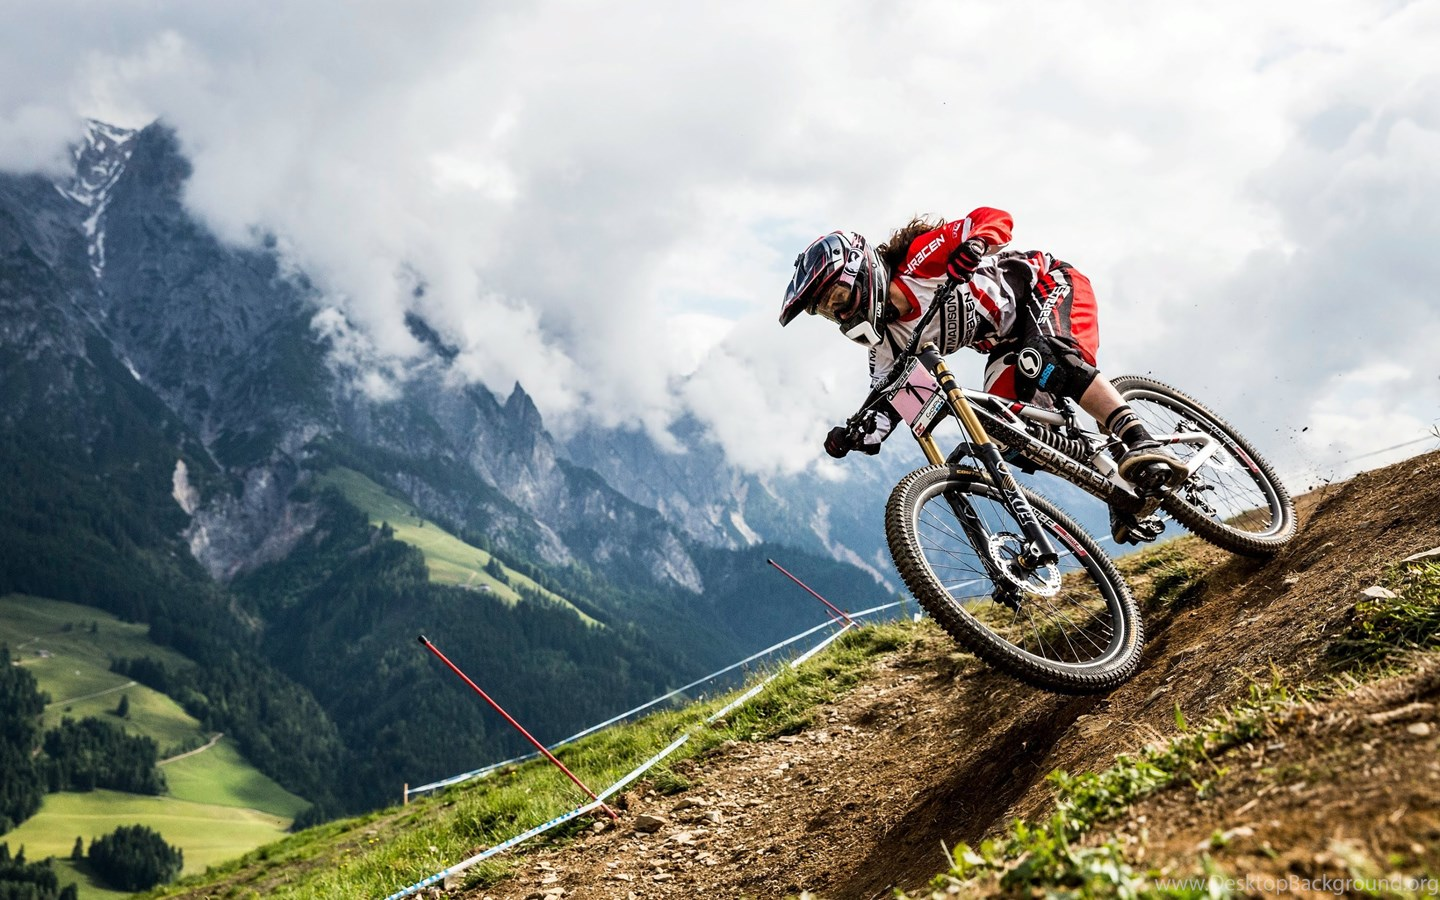 Mountain Road Bike Wallpapers: Mountain Bike Downhill Wallpapers HD. Free Desktop